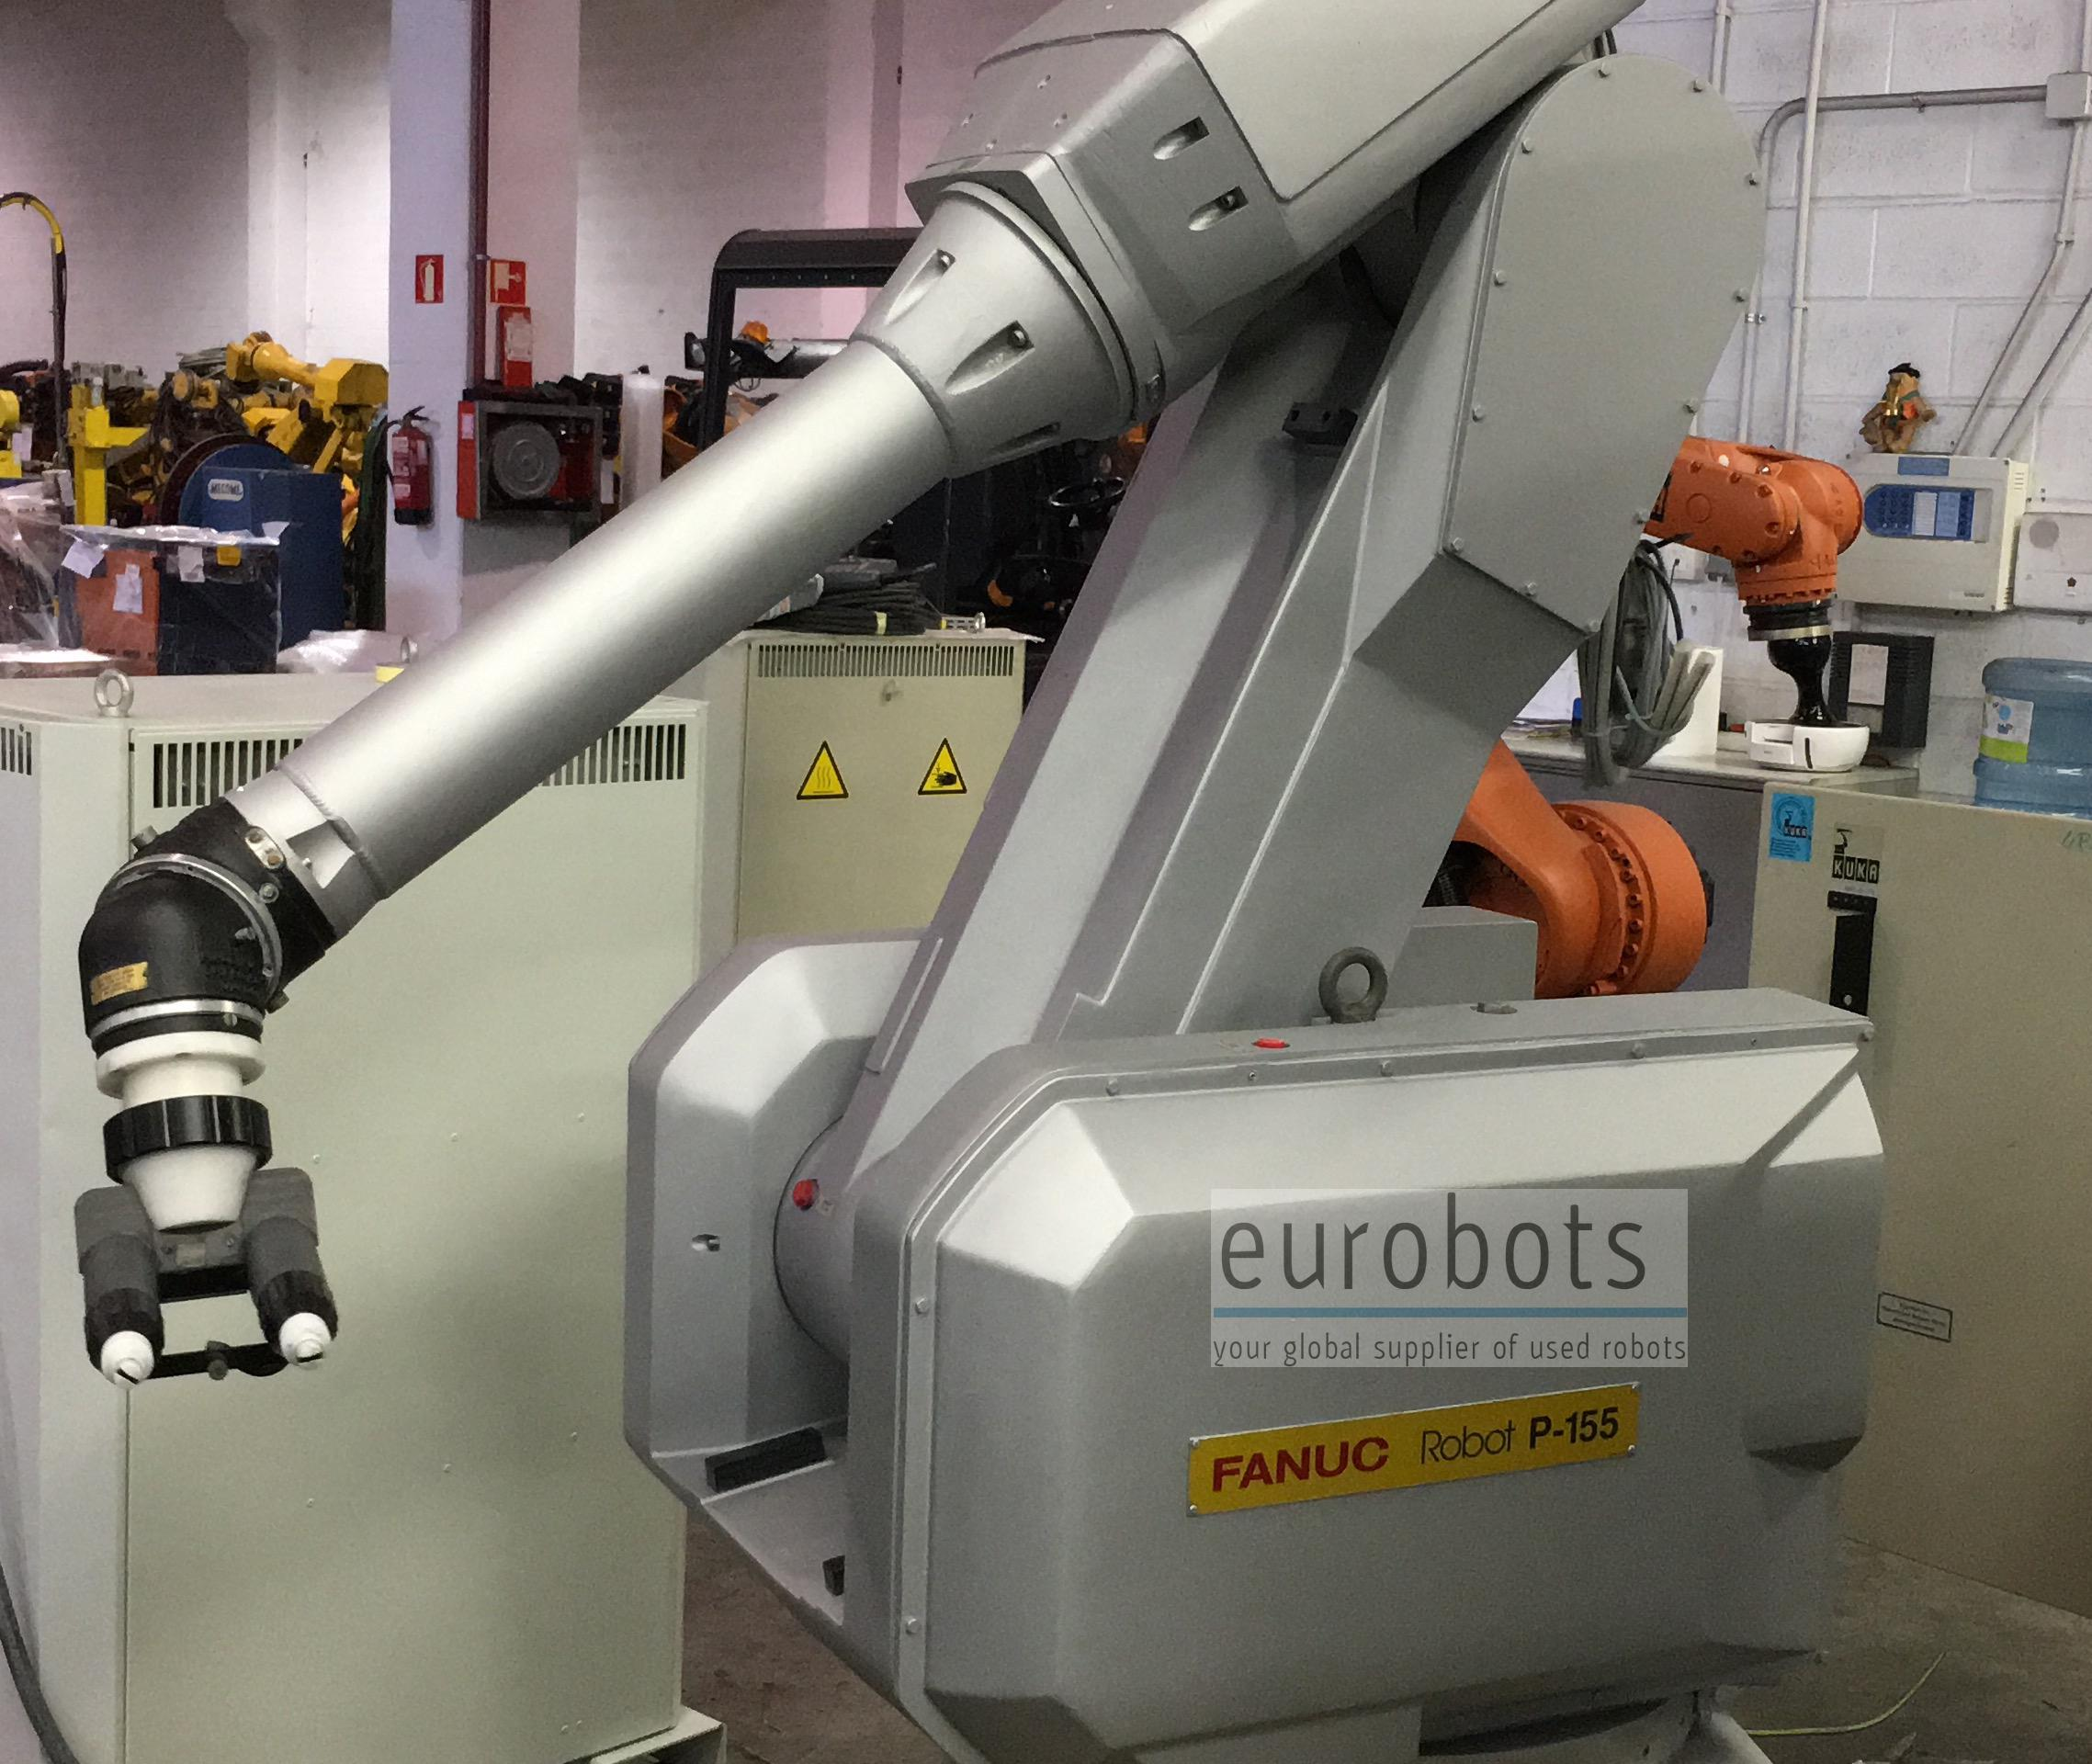 Robot Fanuc P-155 paint RJ2 | Eurobots it